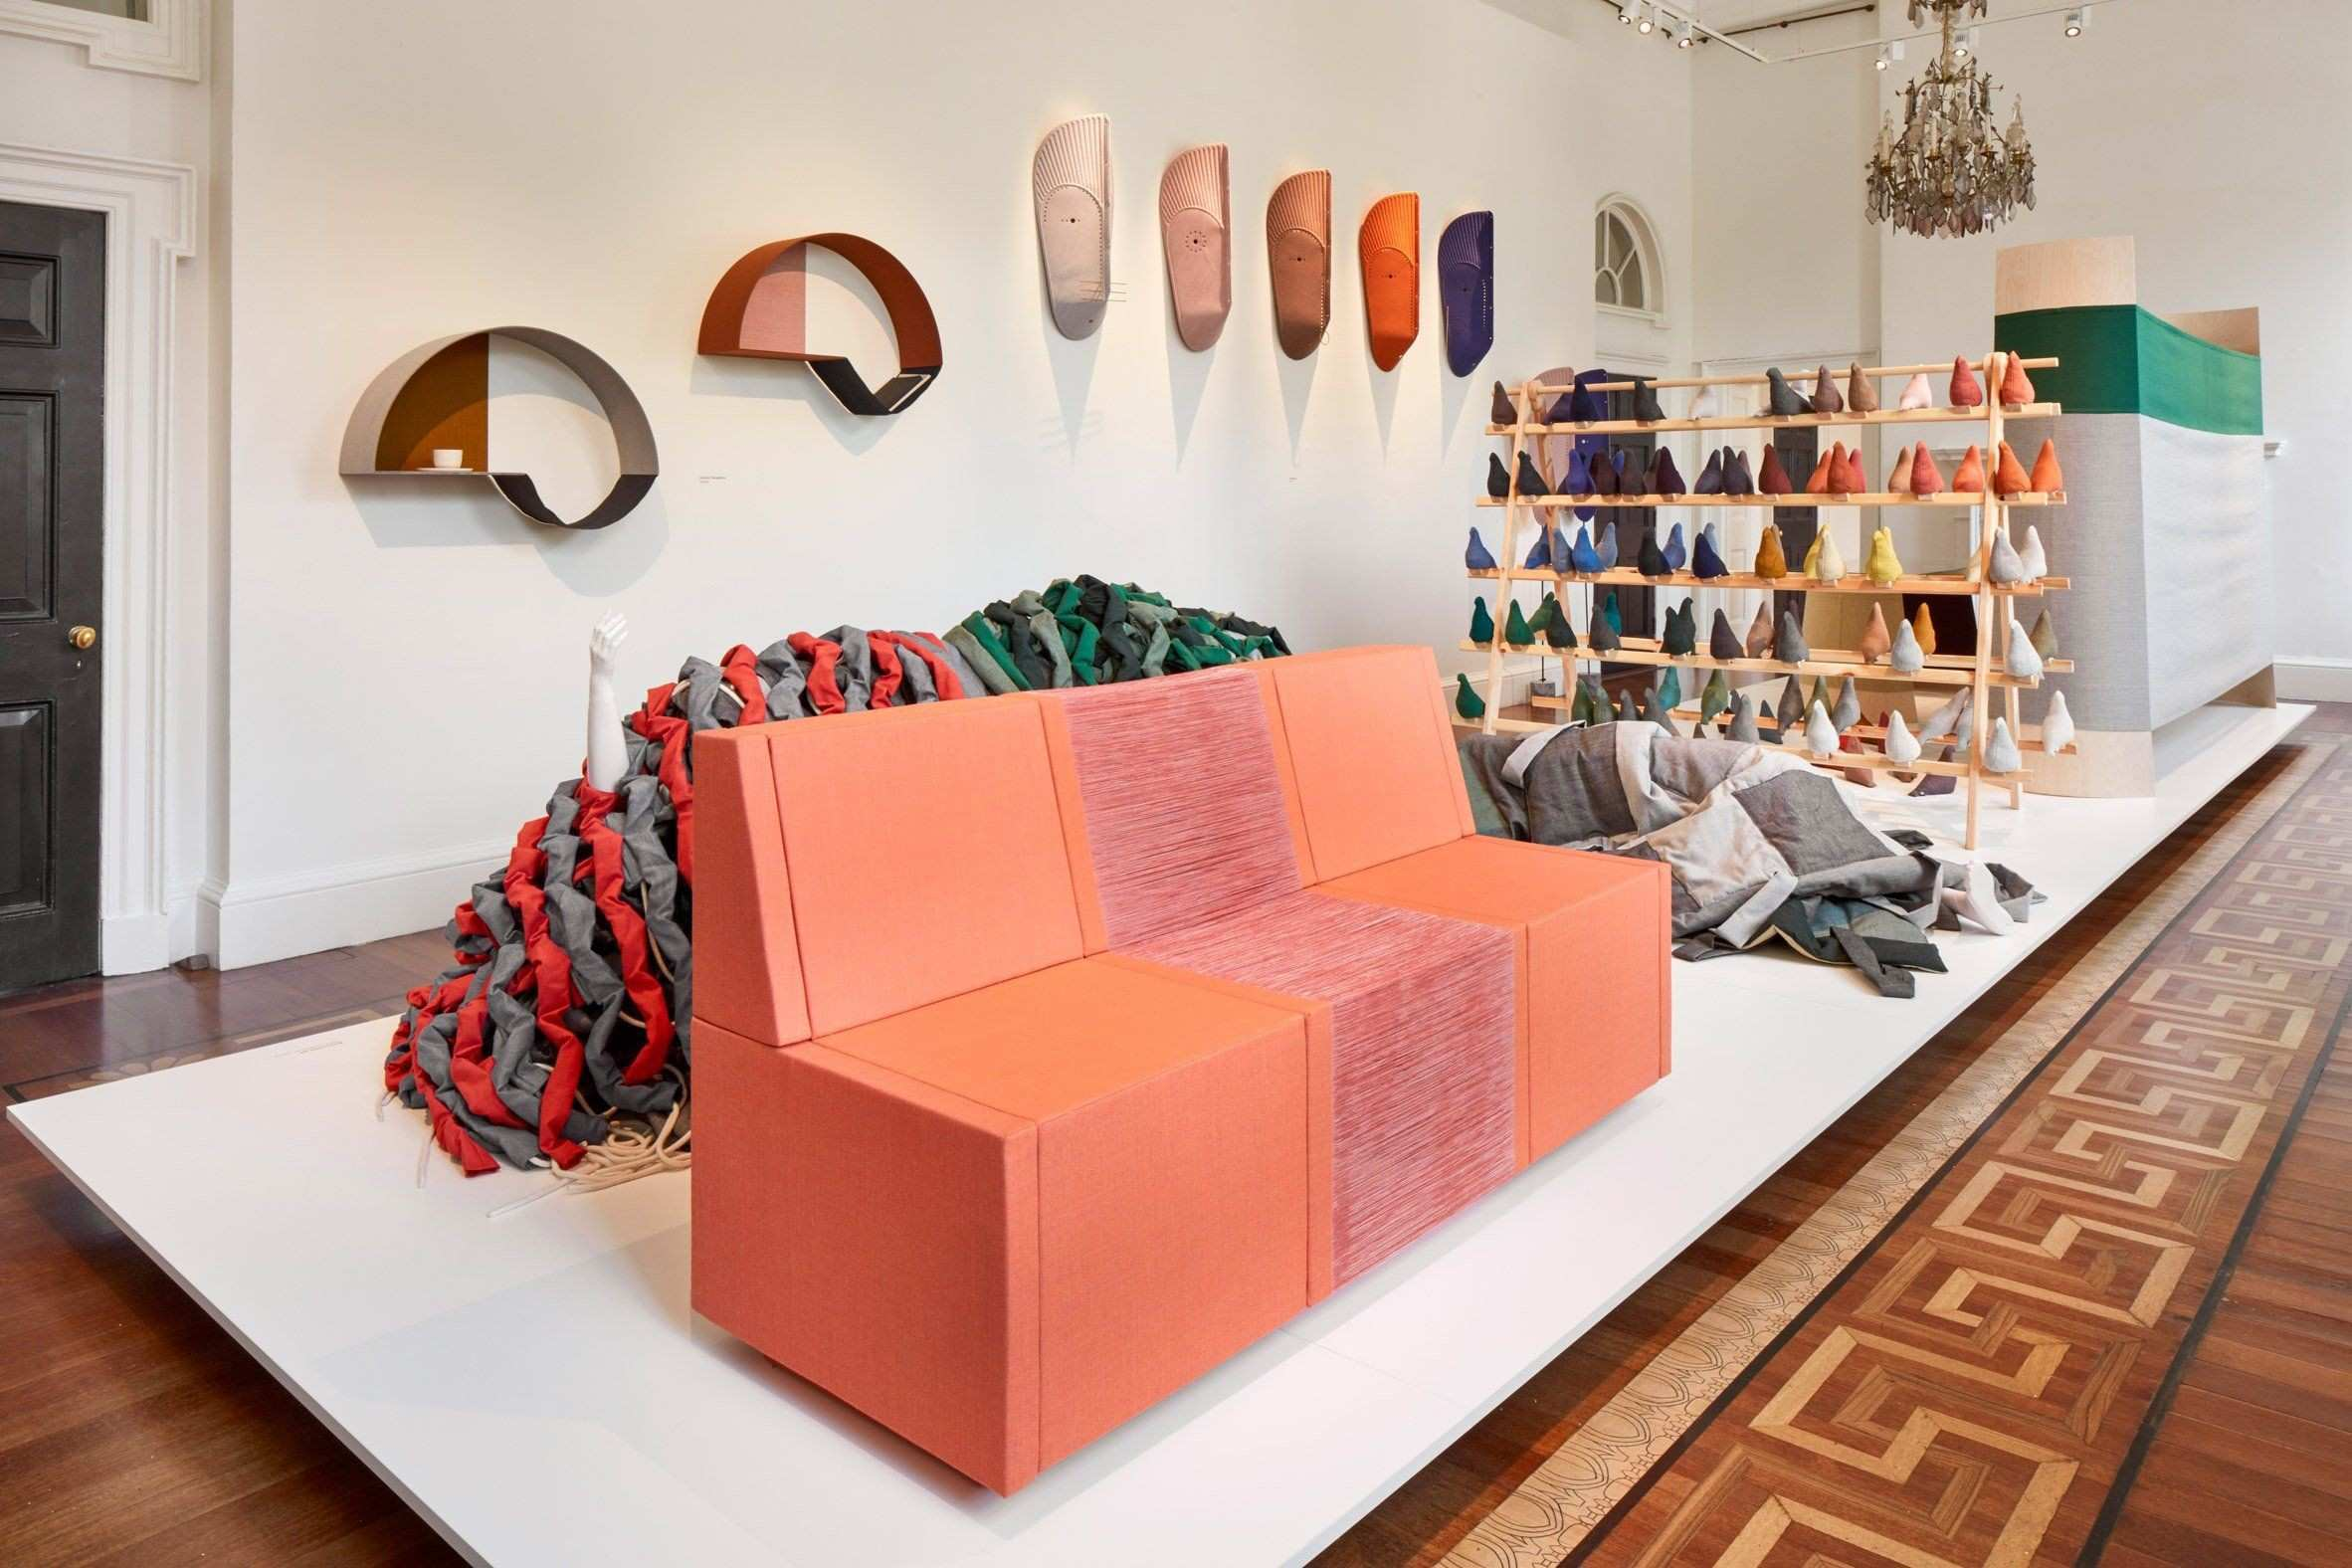 """Kvadrat has invited 19 designers to """"rethink the use"""" of its popular"""